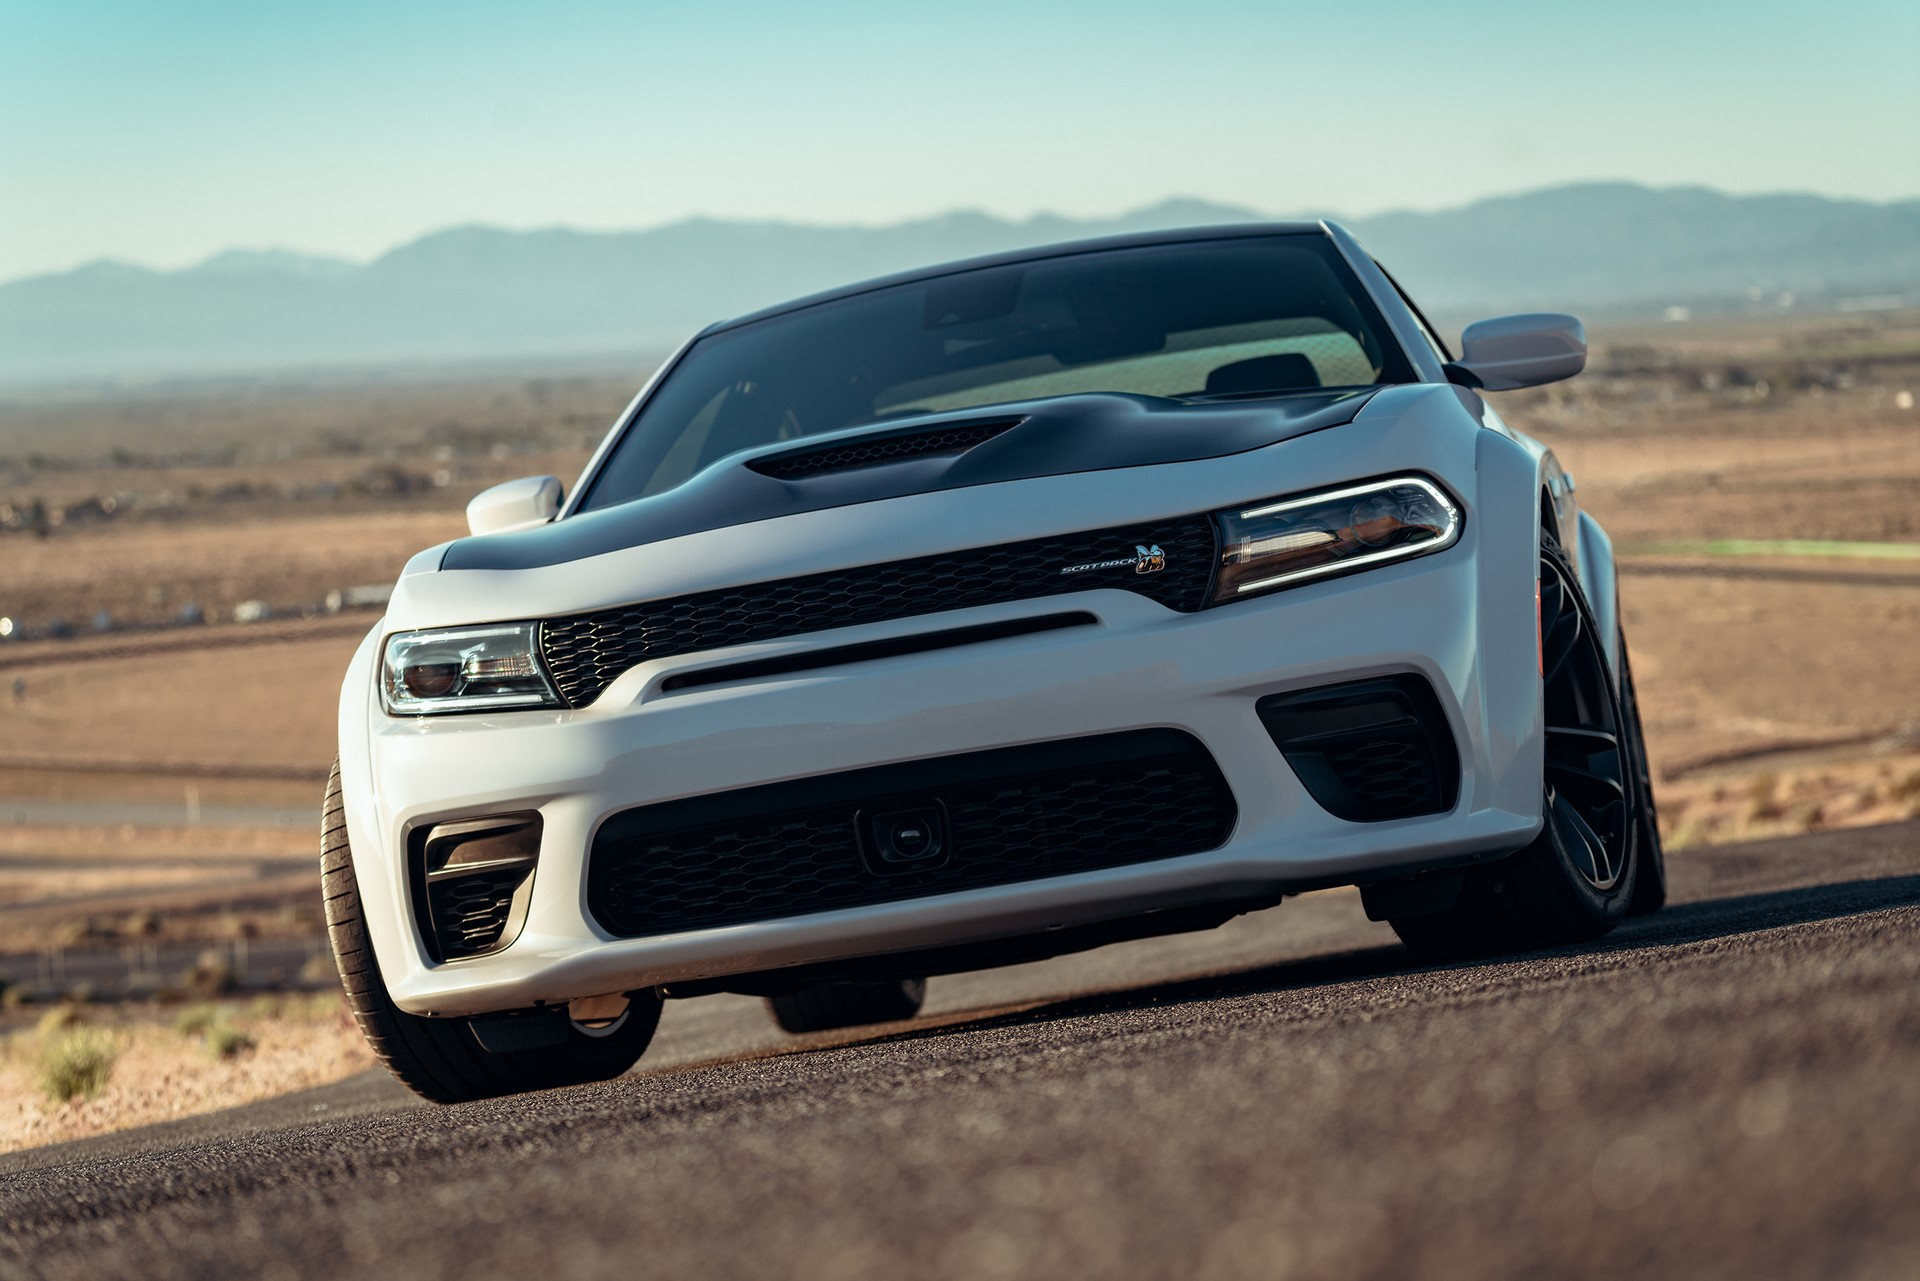 Newly designed front fascia on the 2020 Dodge Charger Scat Pack Widebody includes a new mail slot grille opening, providing the most direct route for cool air to travel into the radiator, to maintain ideal operating temperature even in the hottest conditions